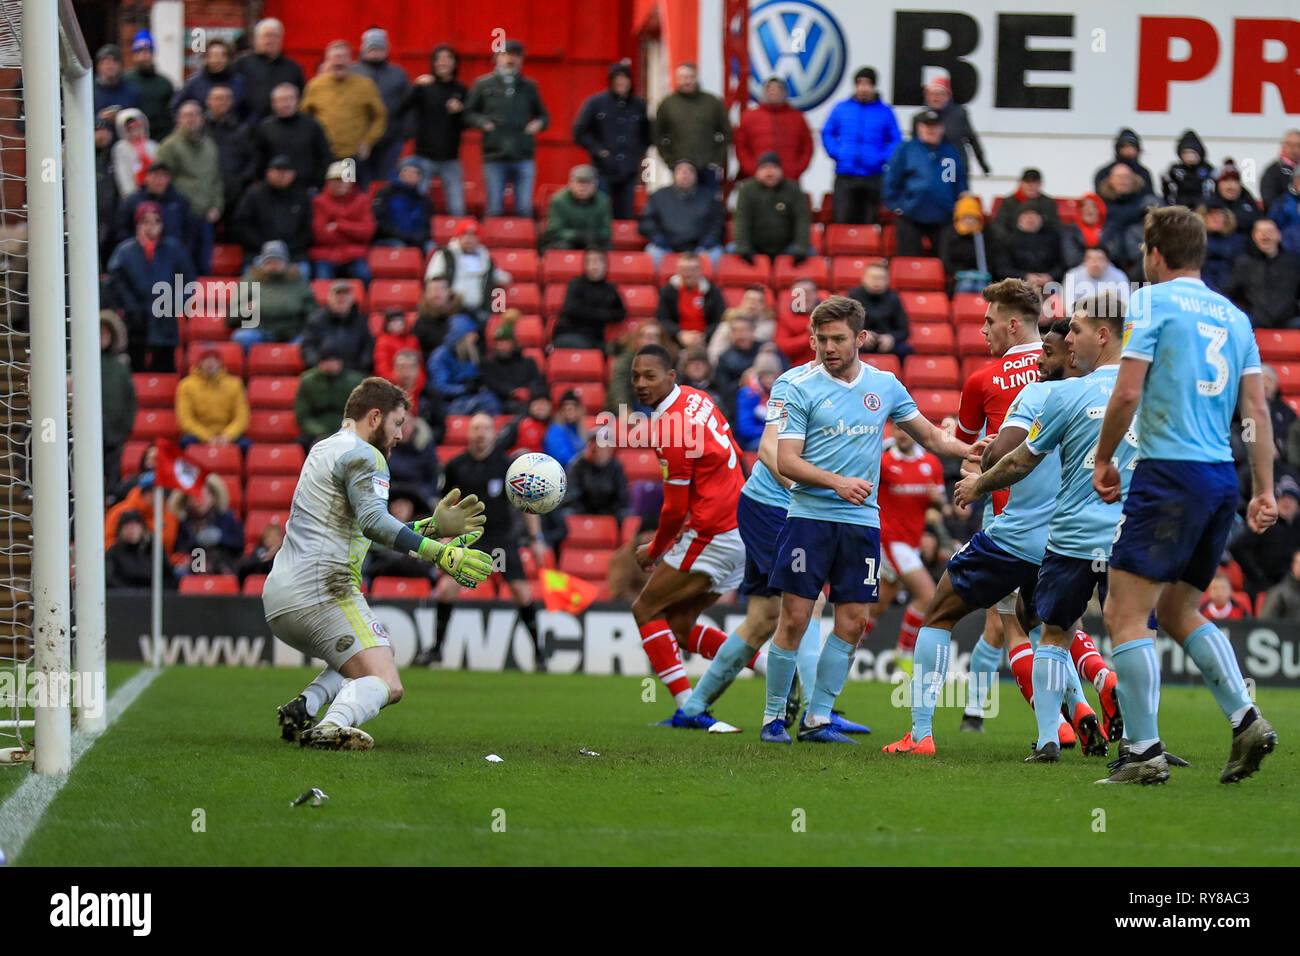 9th March 2019, Oakwell, Barnsley, England; Sky Bet League One, Barnsley vs Accrington Stanley ; Jonathan Maxted (01) of Accrington Stanley saves from a header by Liam Lindsay (06) of Barnsley    Credit: John Hobson/News Images  English Football League images are subject to DataCo Licence - Stock Image